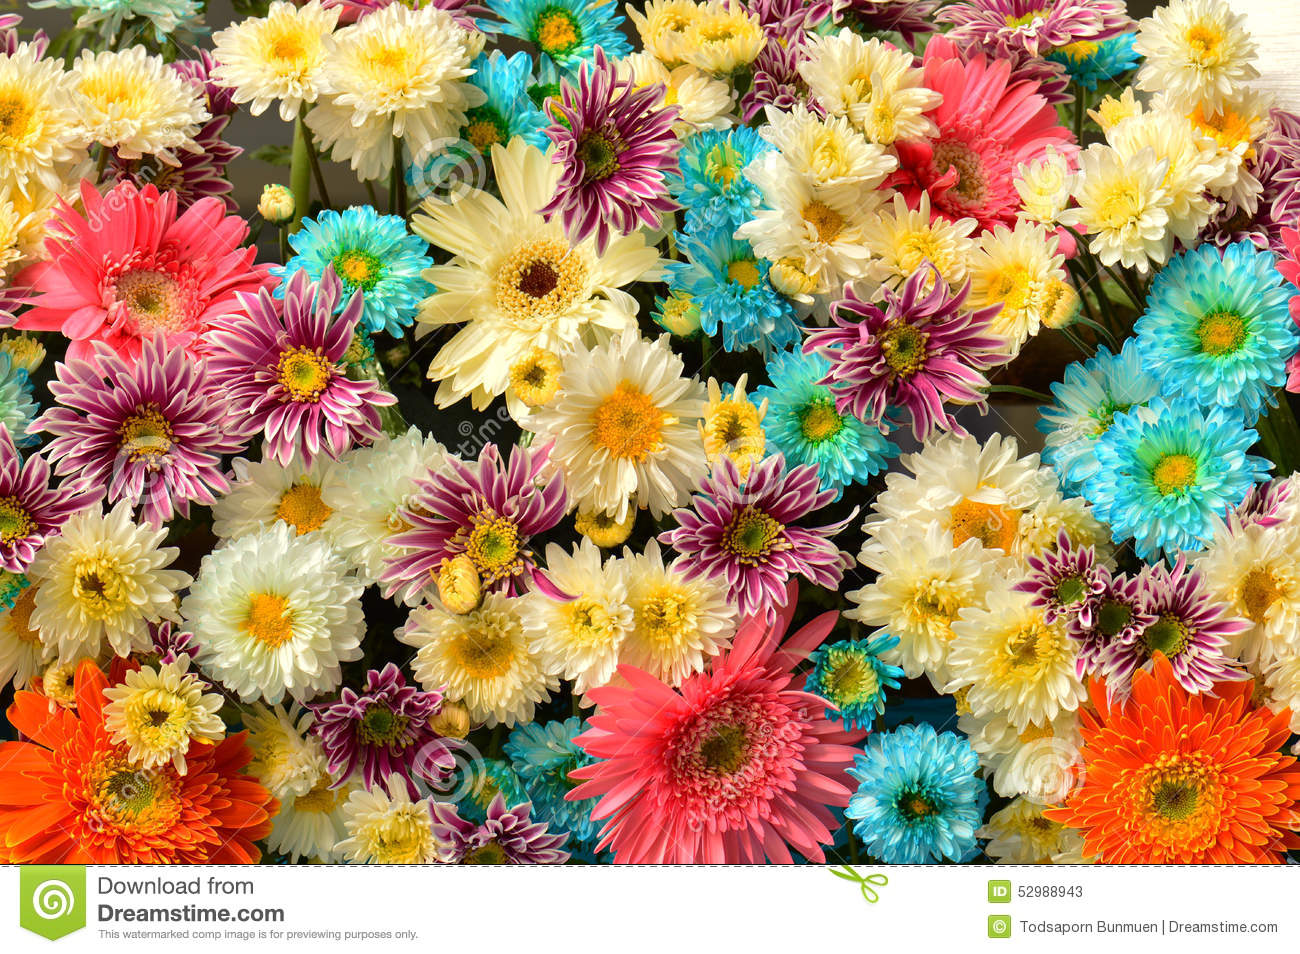 Flower bouquet background stock image. Image of floral - 52988943